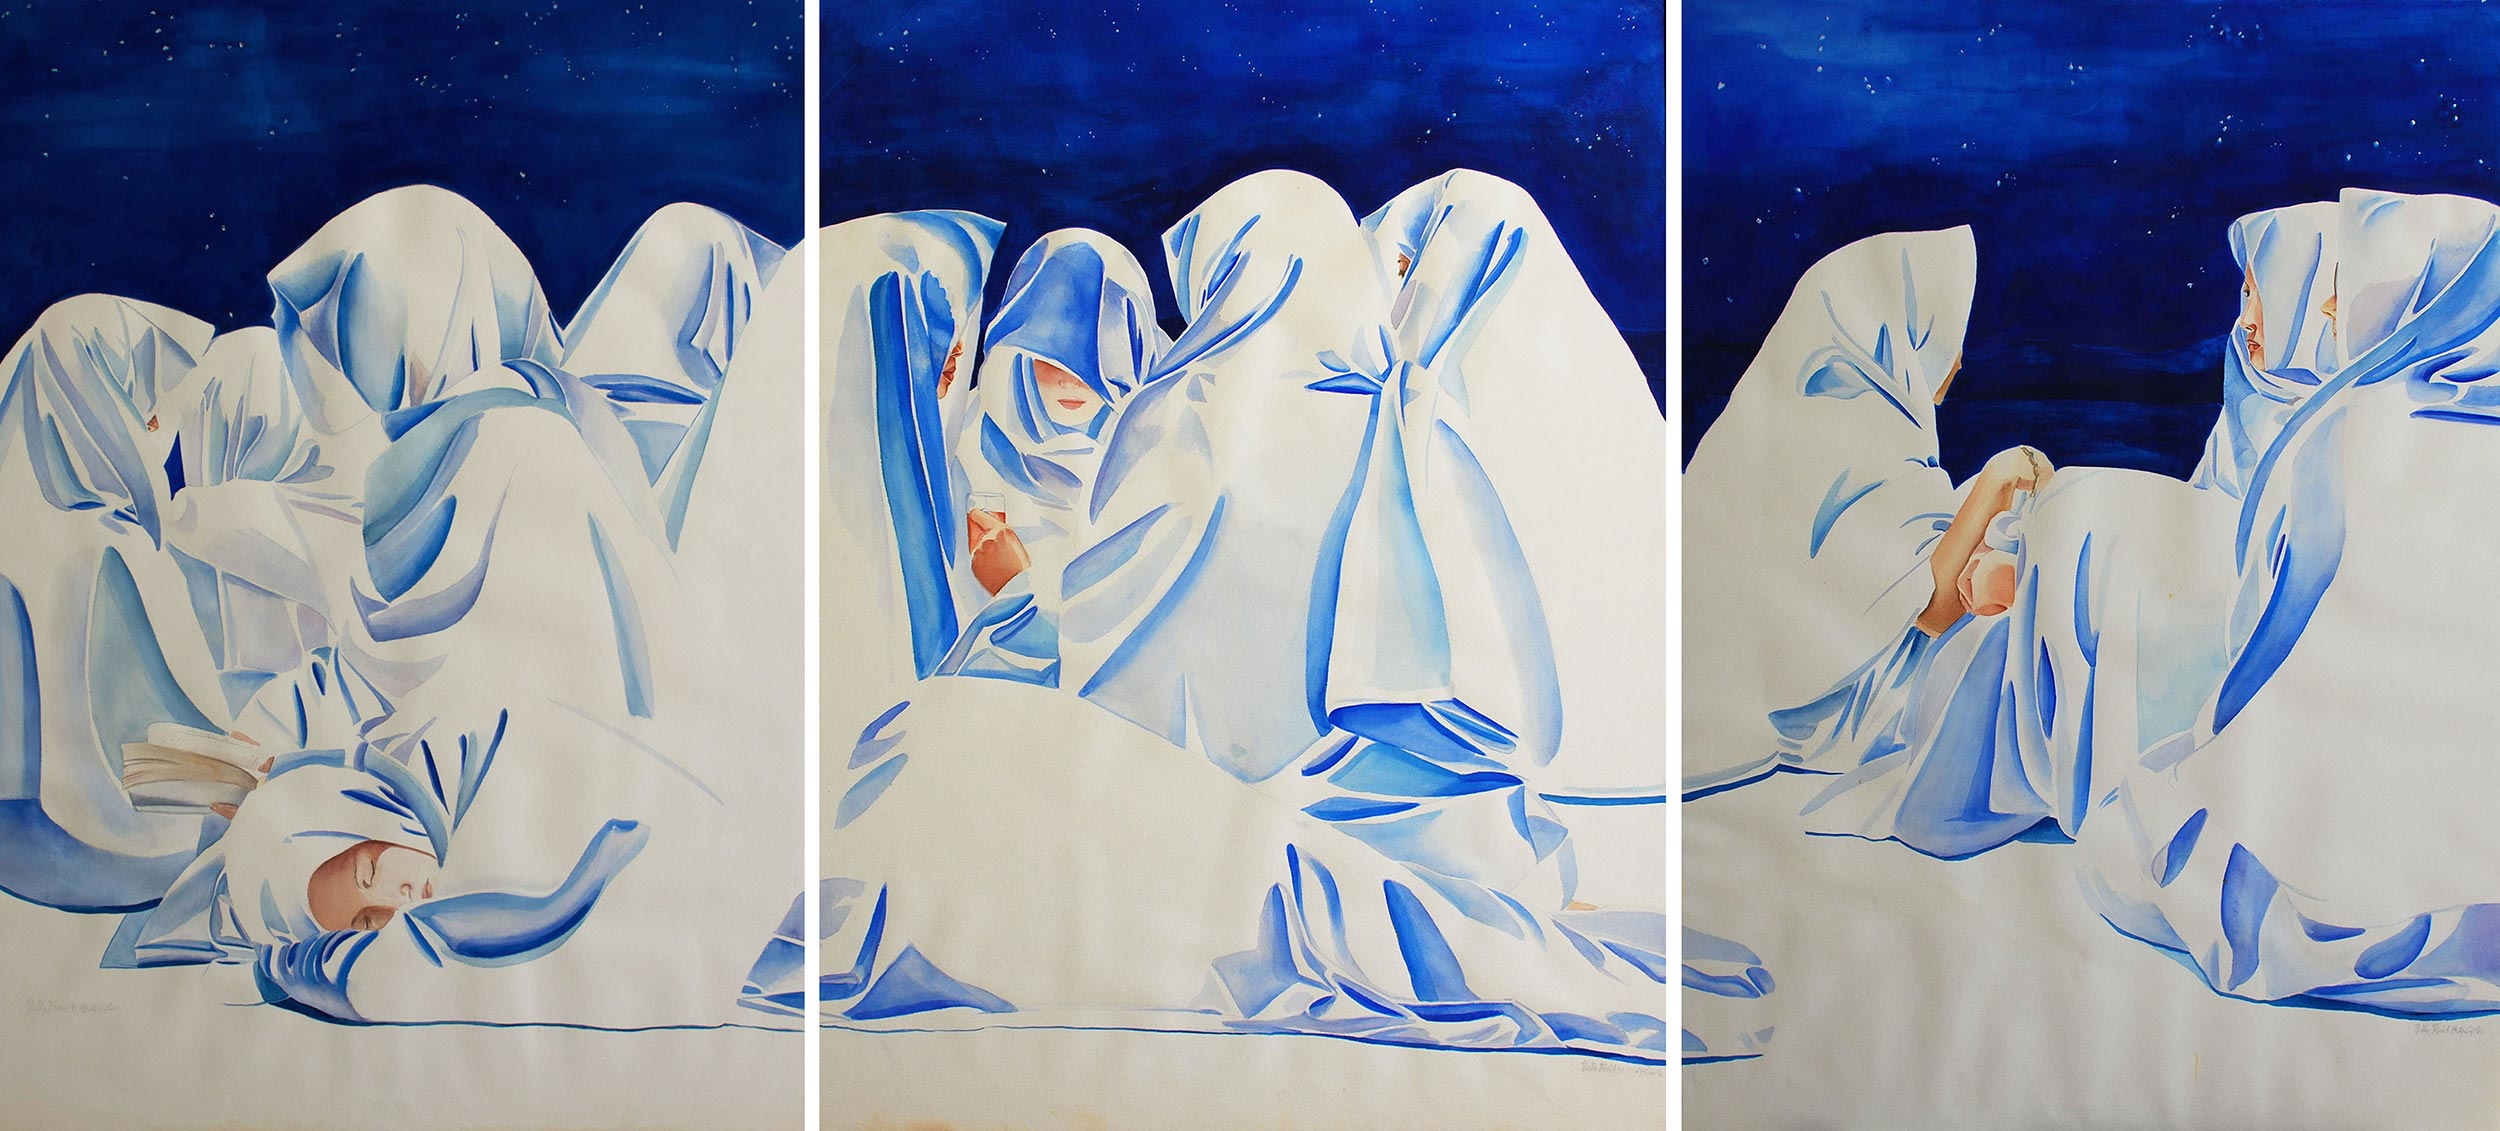 Muzdalifa Night, 1994, Watercolour & gouache on paper, 95.5 x 390 cm (triptych)